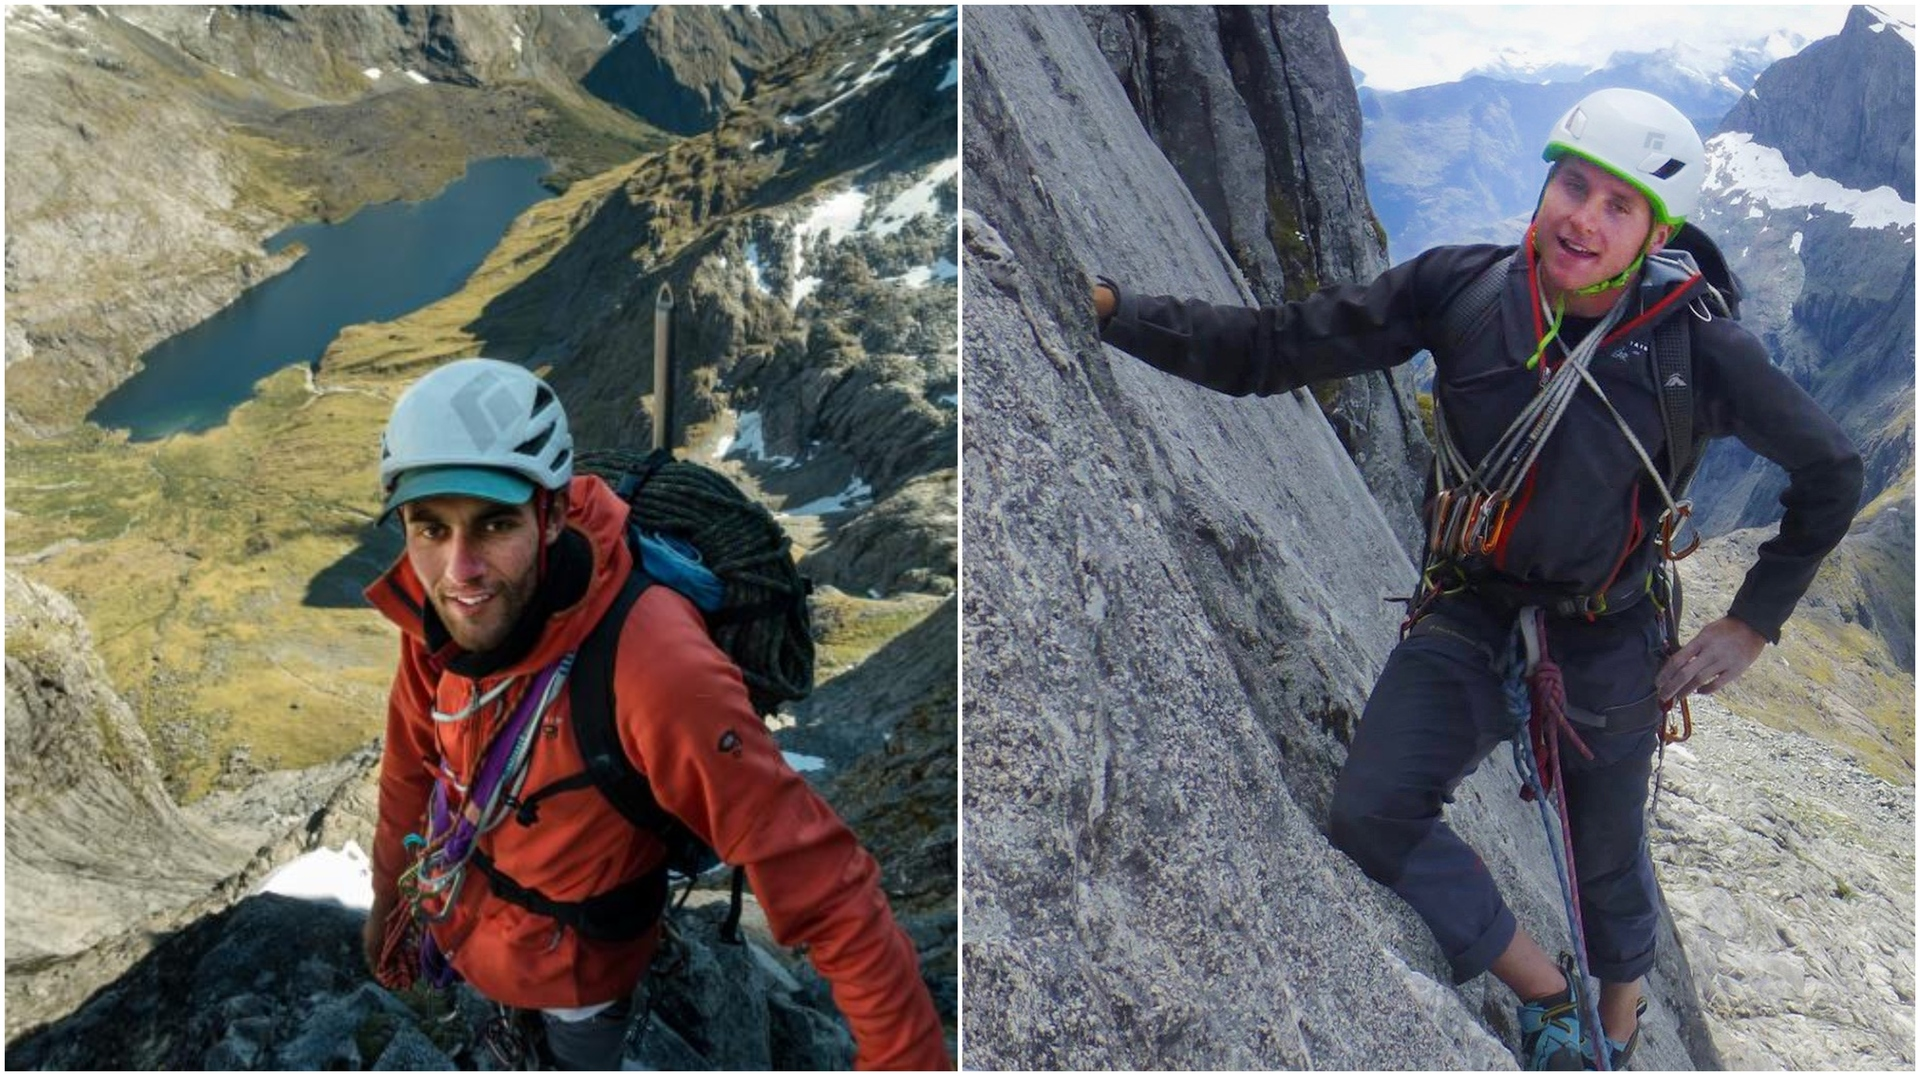 'Capable' climbers fell to their deaths from Marian Peak